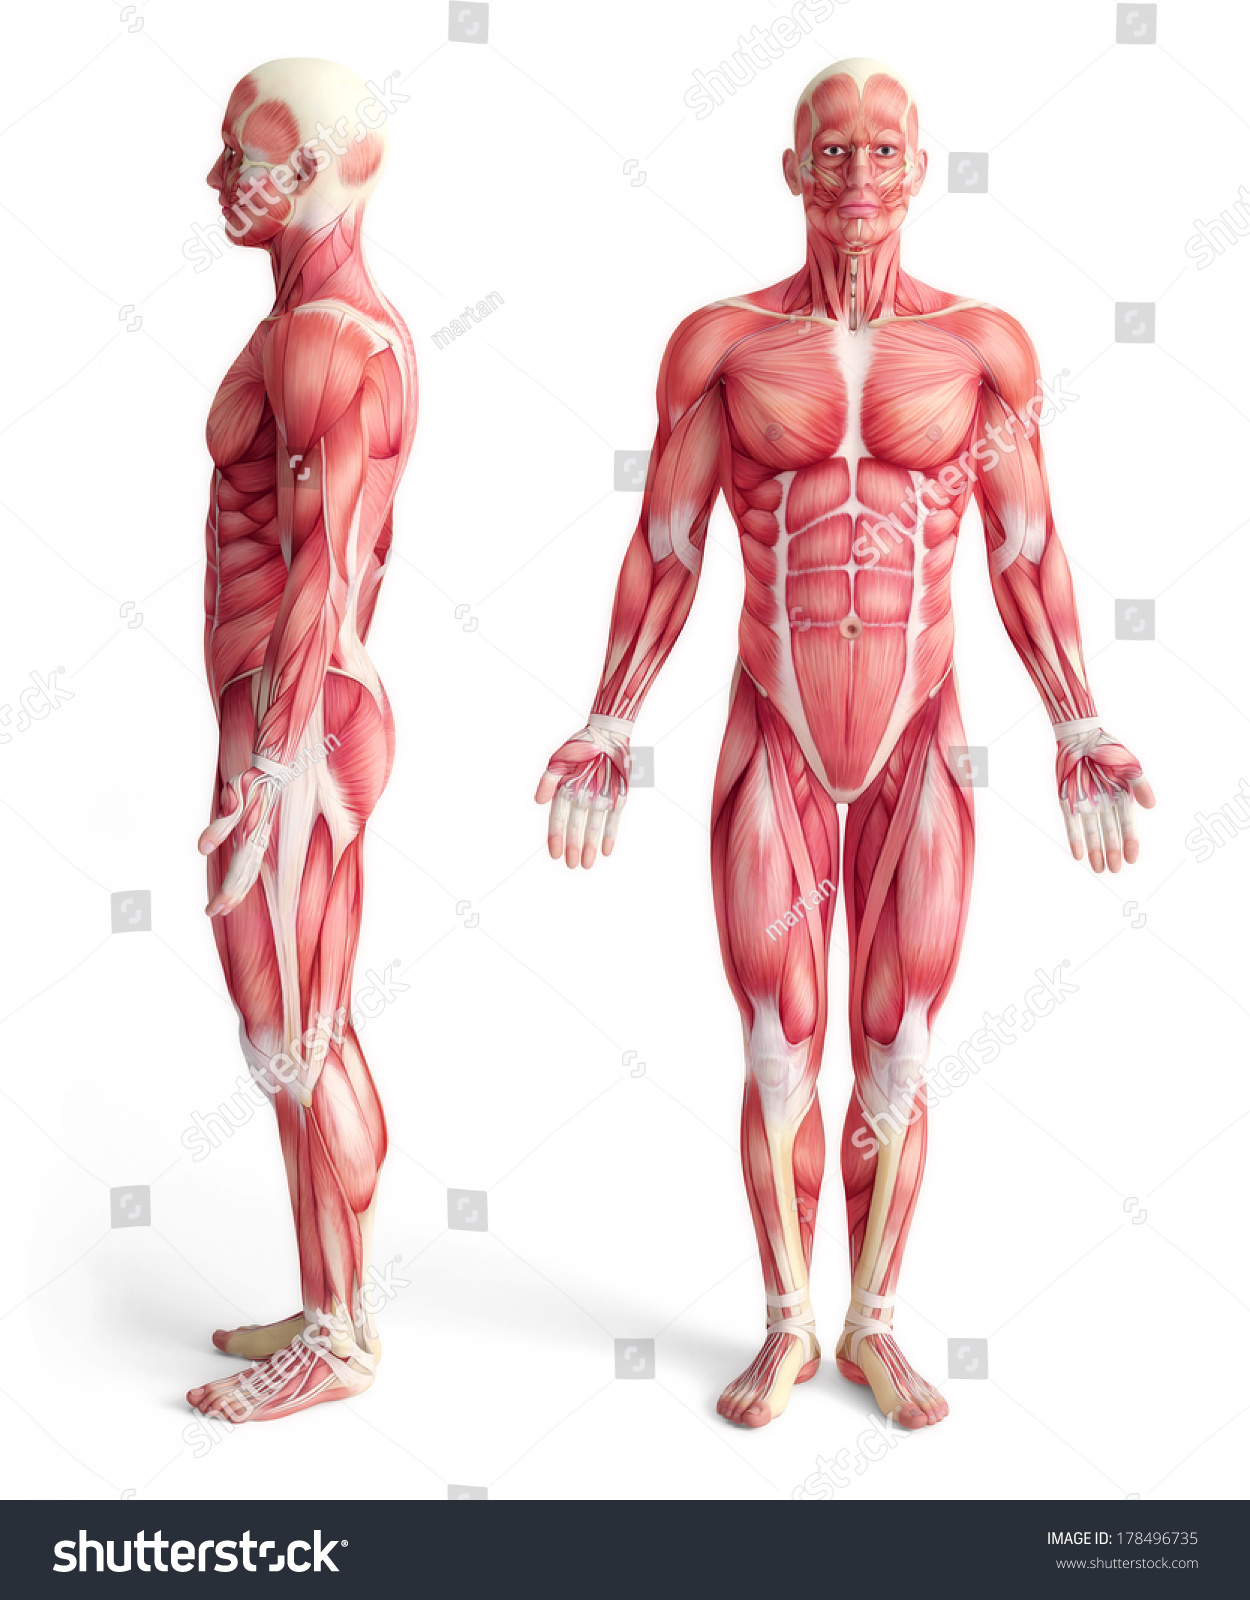 male anatomy front view image collections - learn human anatomy image, Human Body